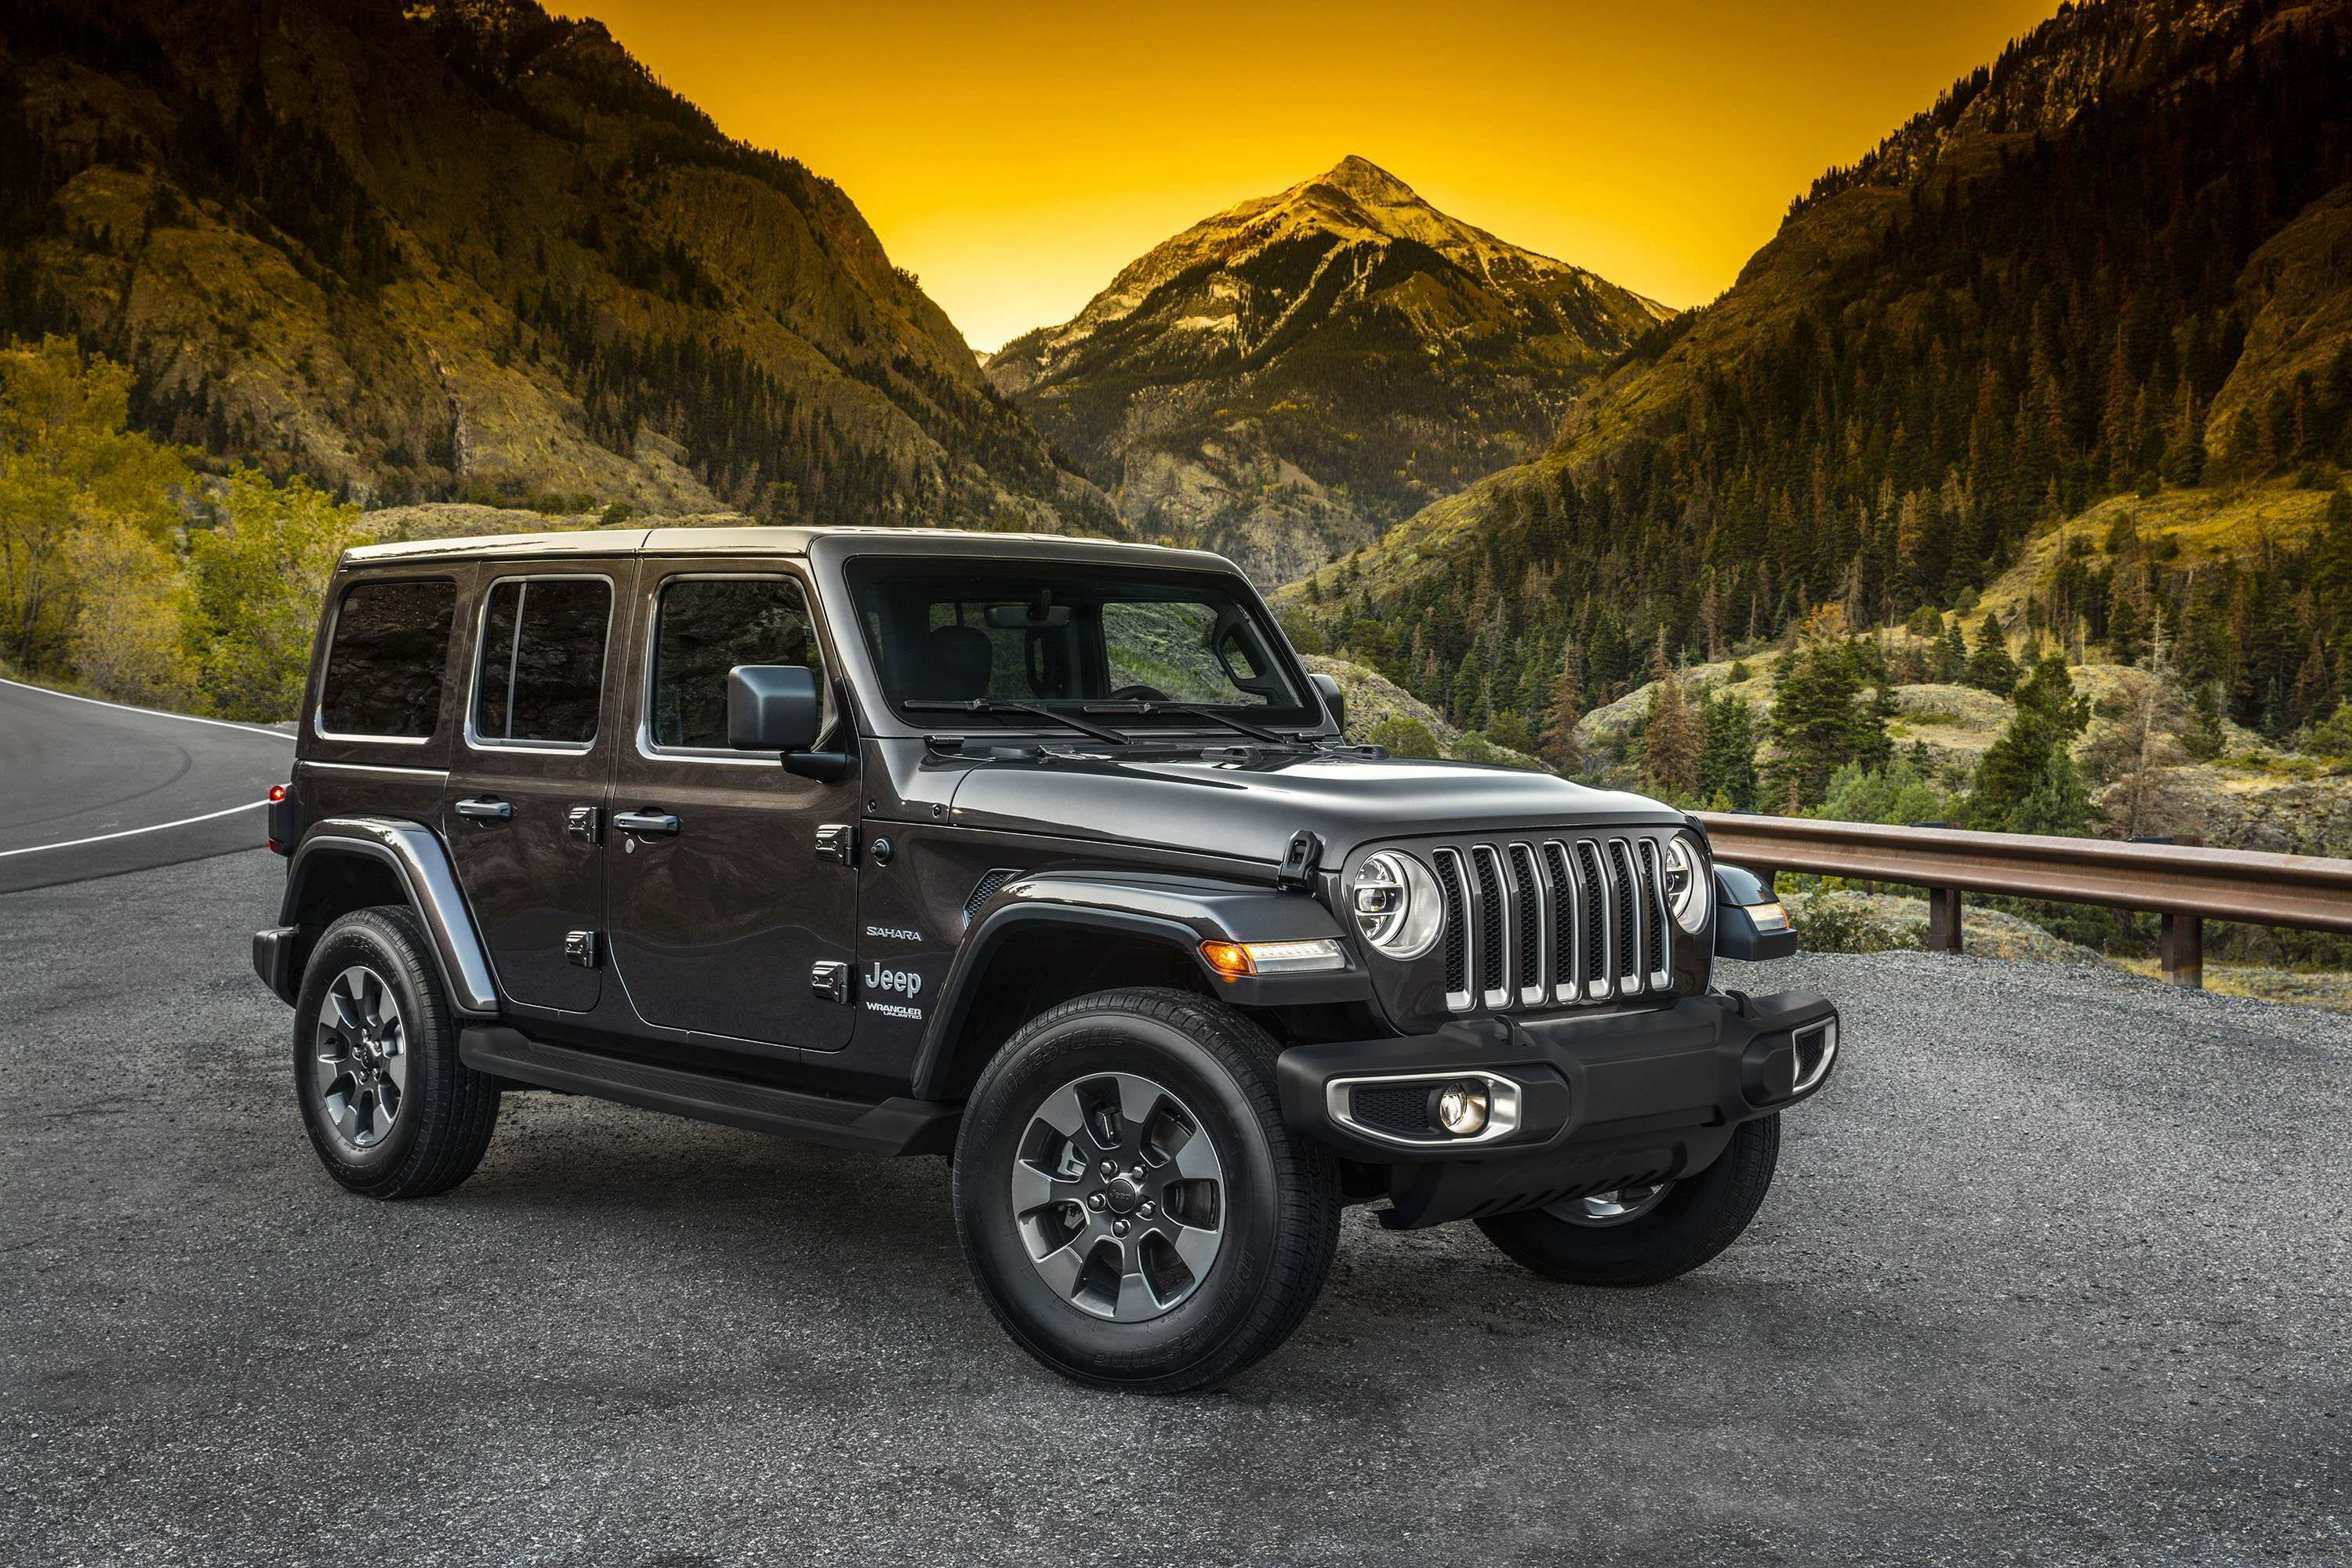 64 All New 2020 Jeep Wrangler History